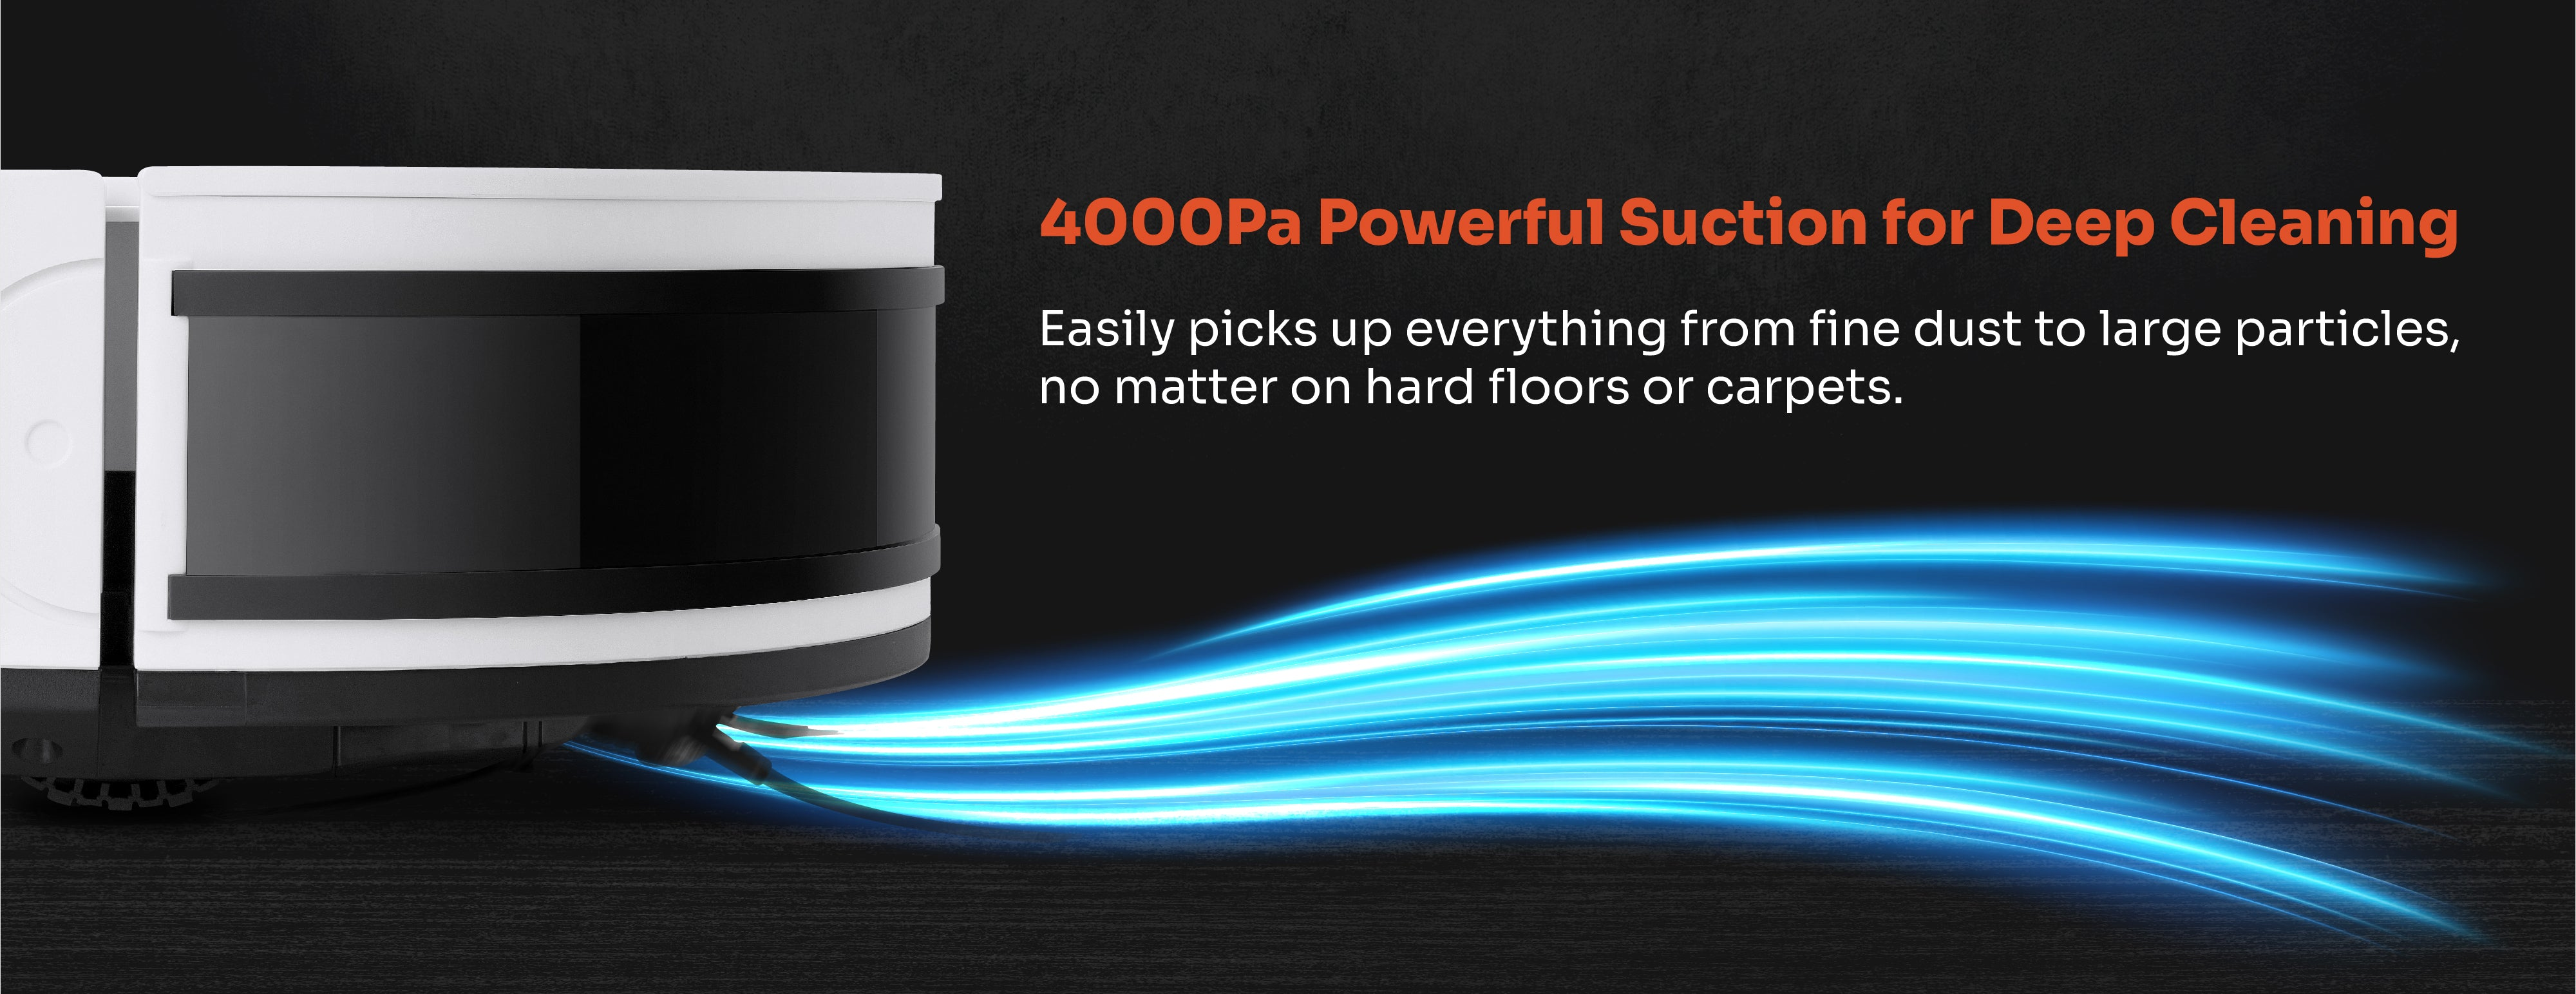 4000Pa powerful suction for deep cleaning